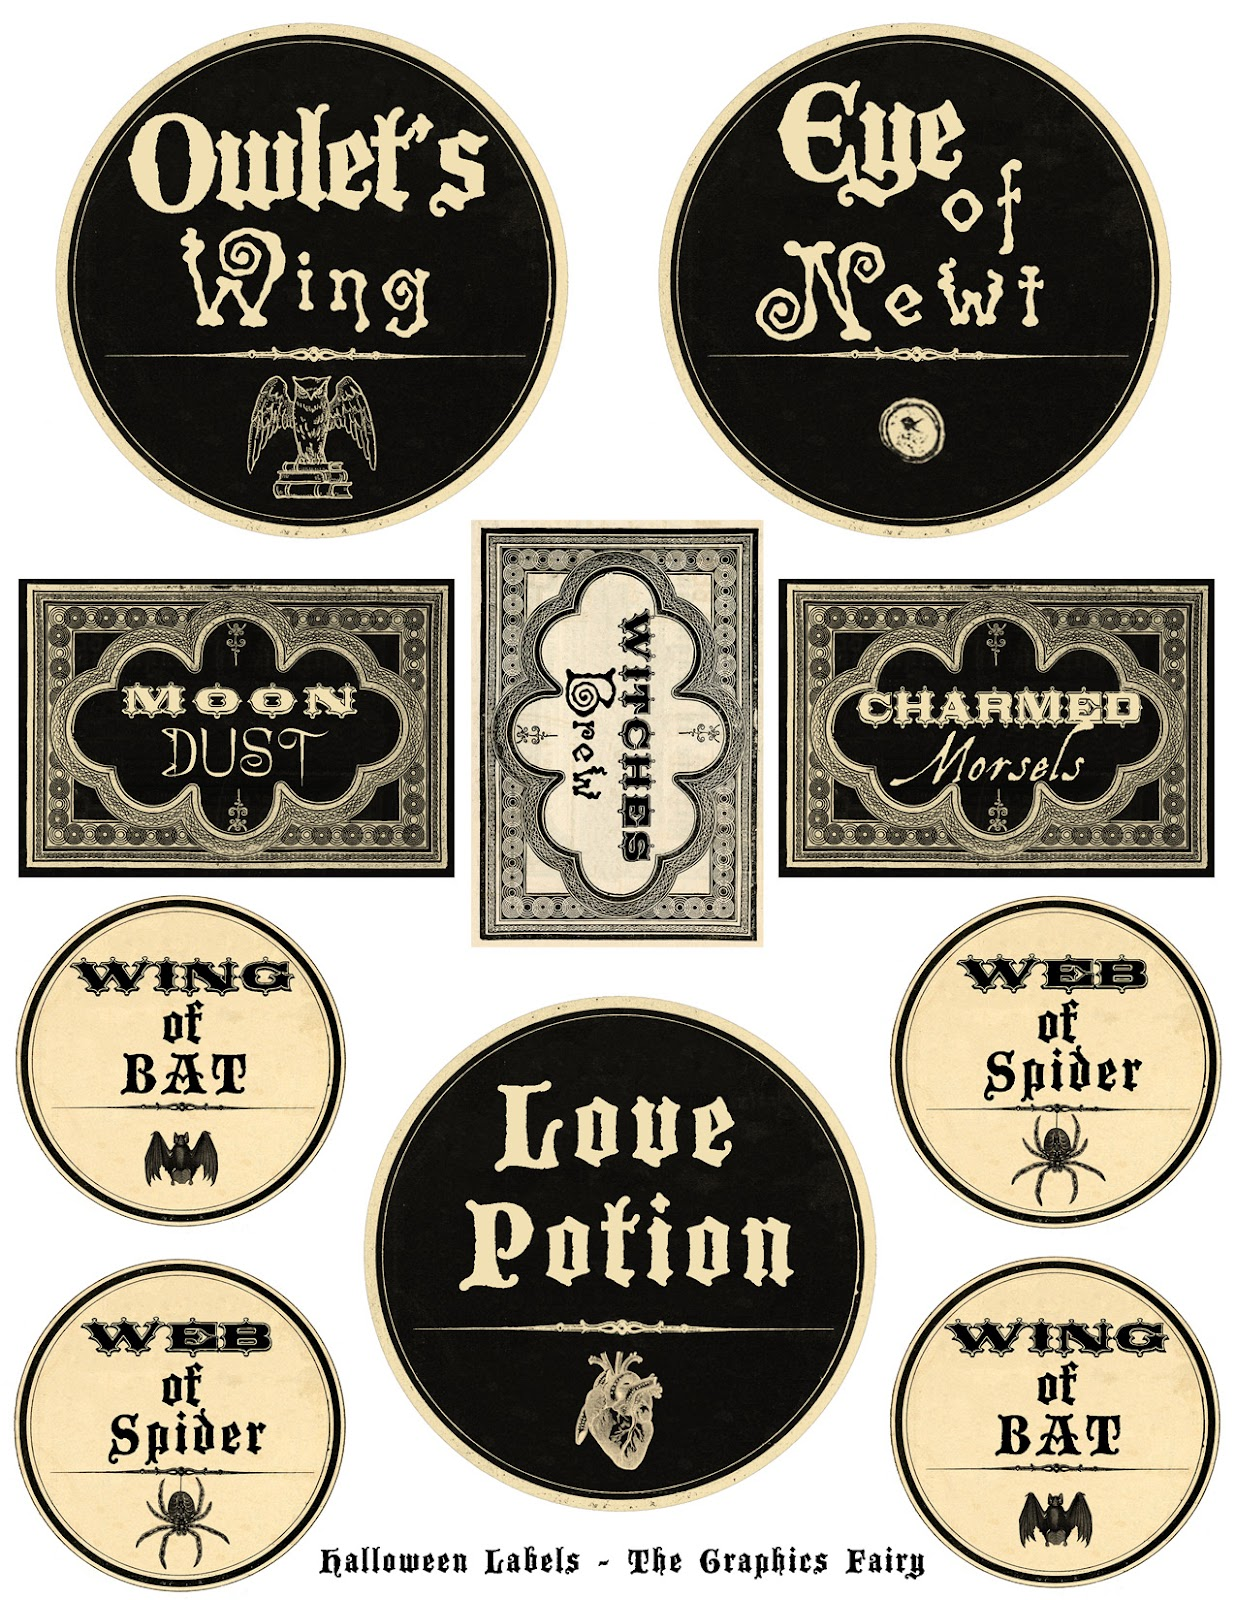 Very Free Printable Halloween Labels - Potions - The Graphics Fairy NL82